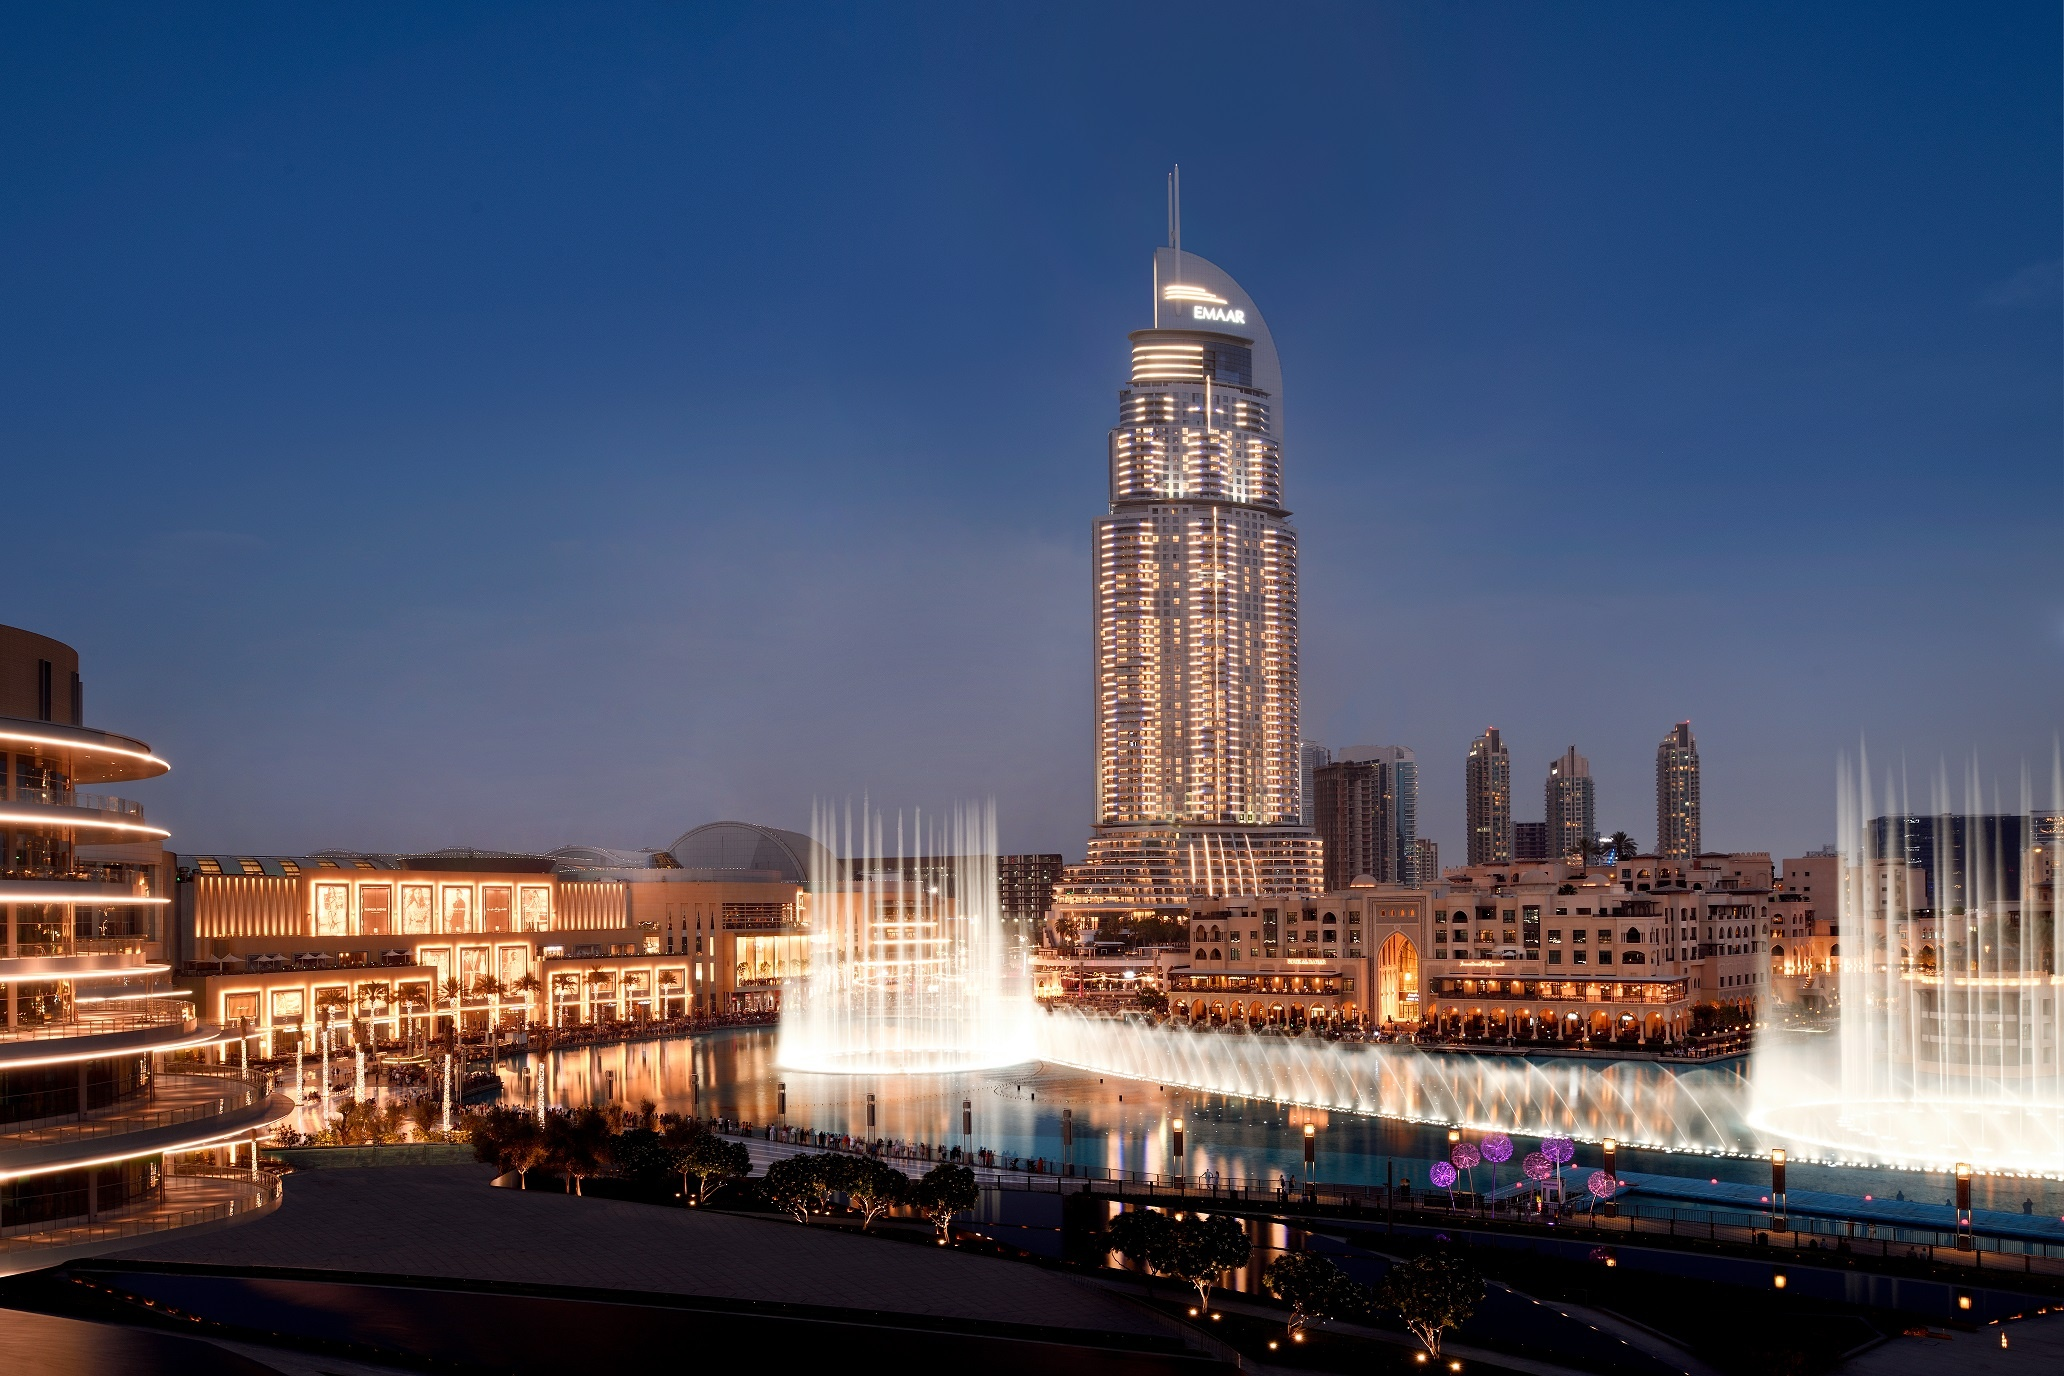 Emaar Hospitality Group portfolio includes The Address Hotels and Resorts